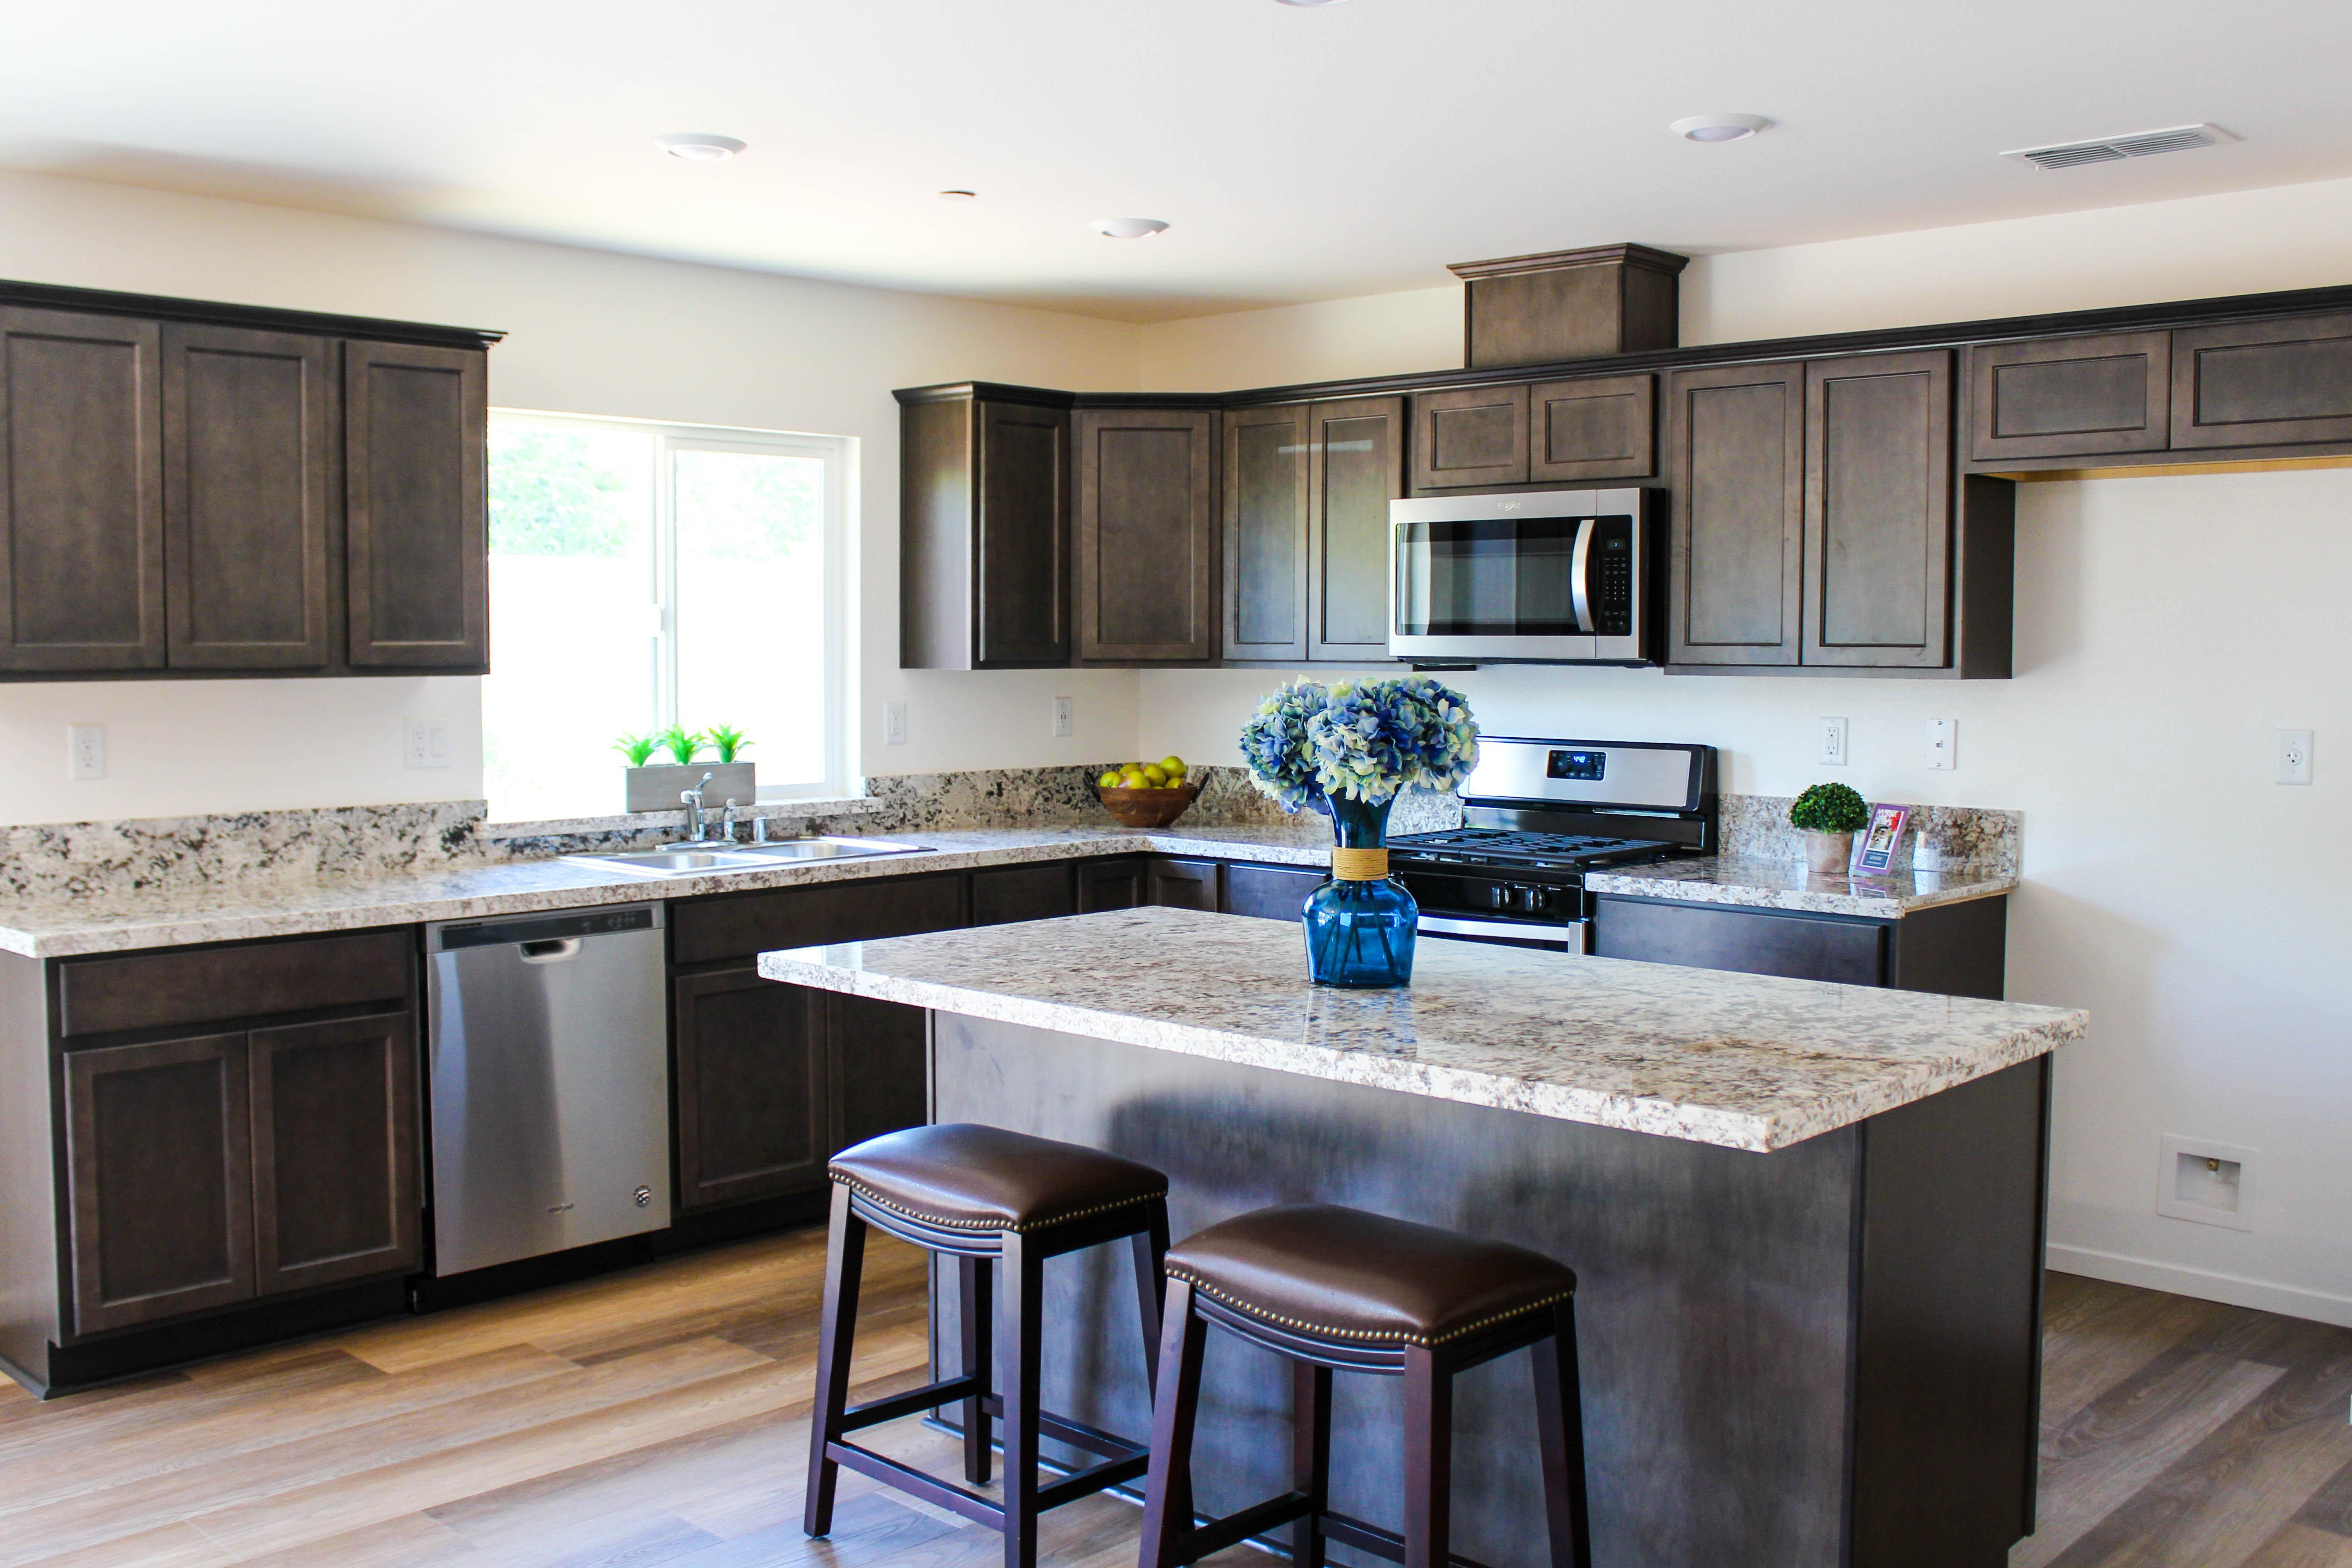 Kitchen featured in the 2B By Crowne Communities in Chico, CA